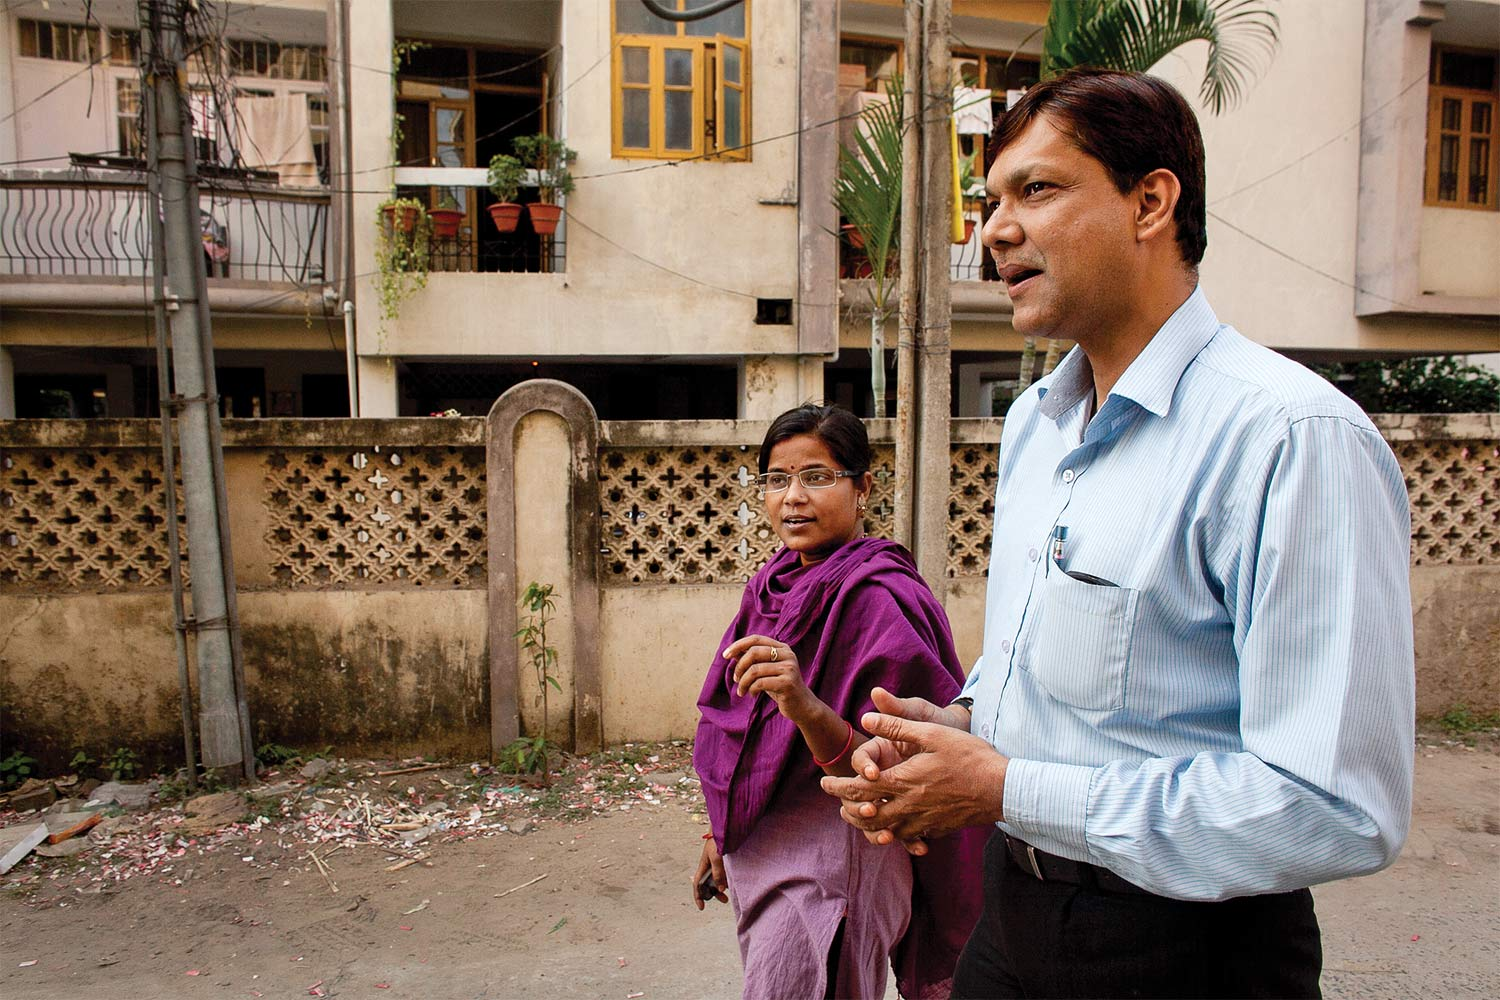 Pinki Kumari (left) and Binod Singh (right) in Patna, 2013.